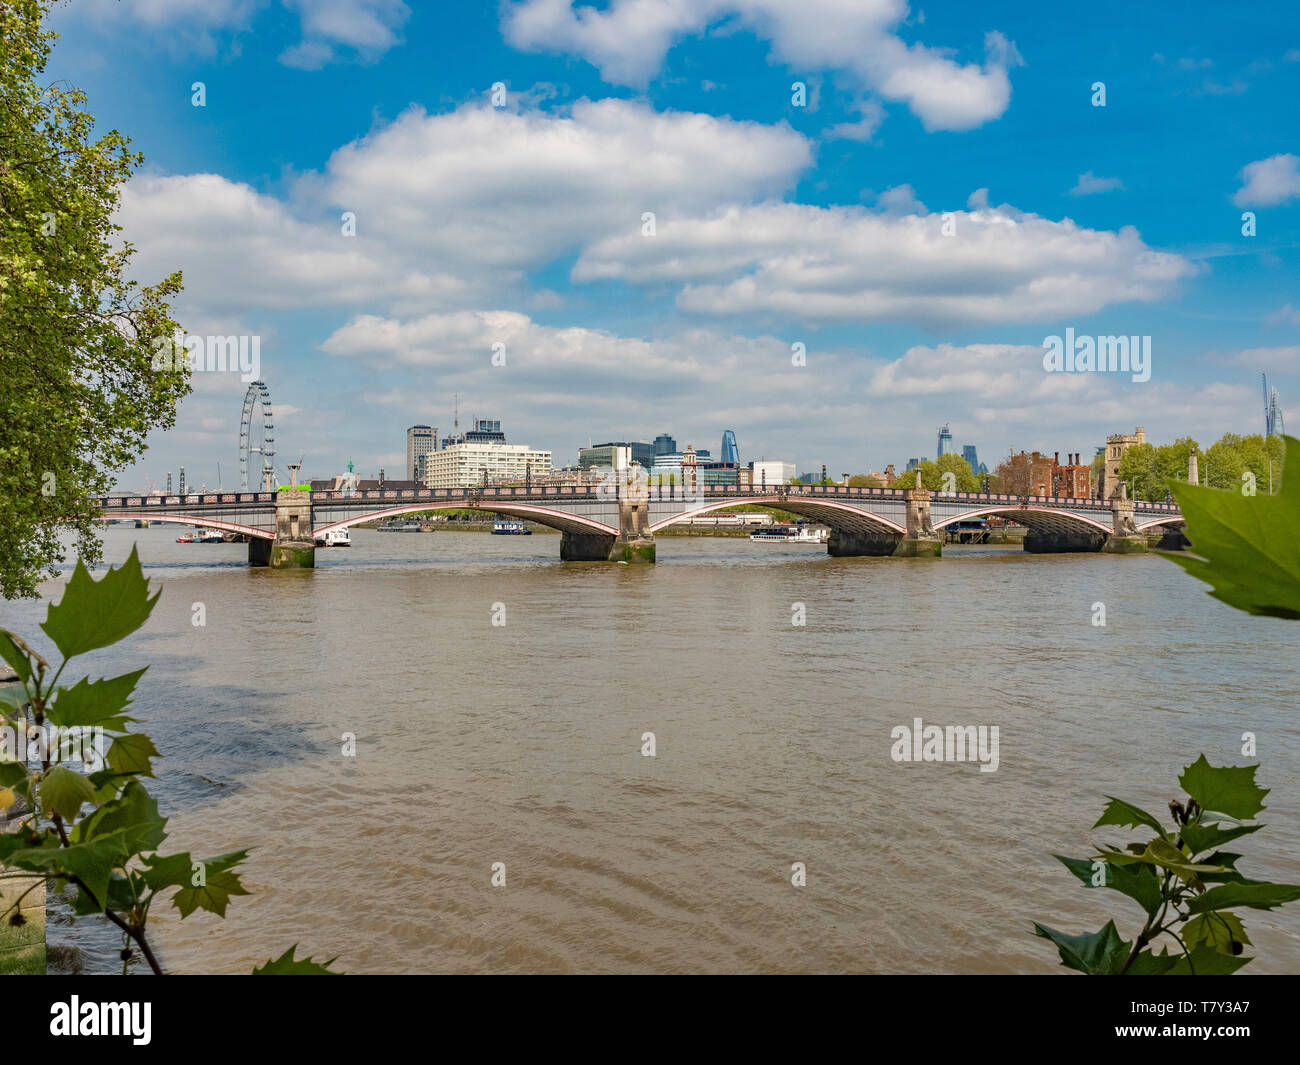 Lambeth Bridge over the river Thames, London, UK. A five-span steel arch, designed by engineer Sir George Humphreys and architects Sir Reginald Blomfi - Stock Image